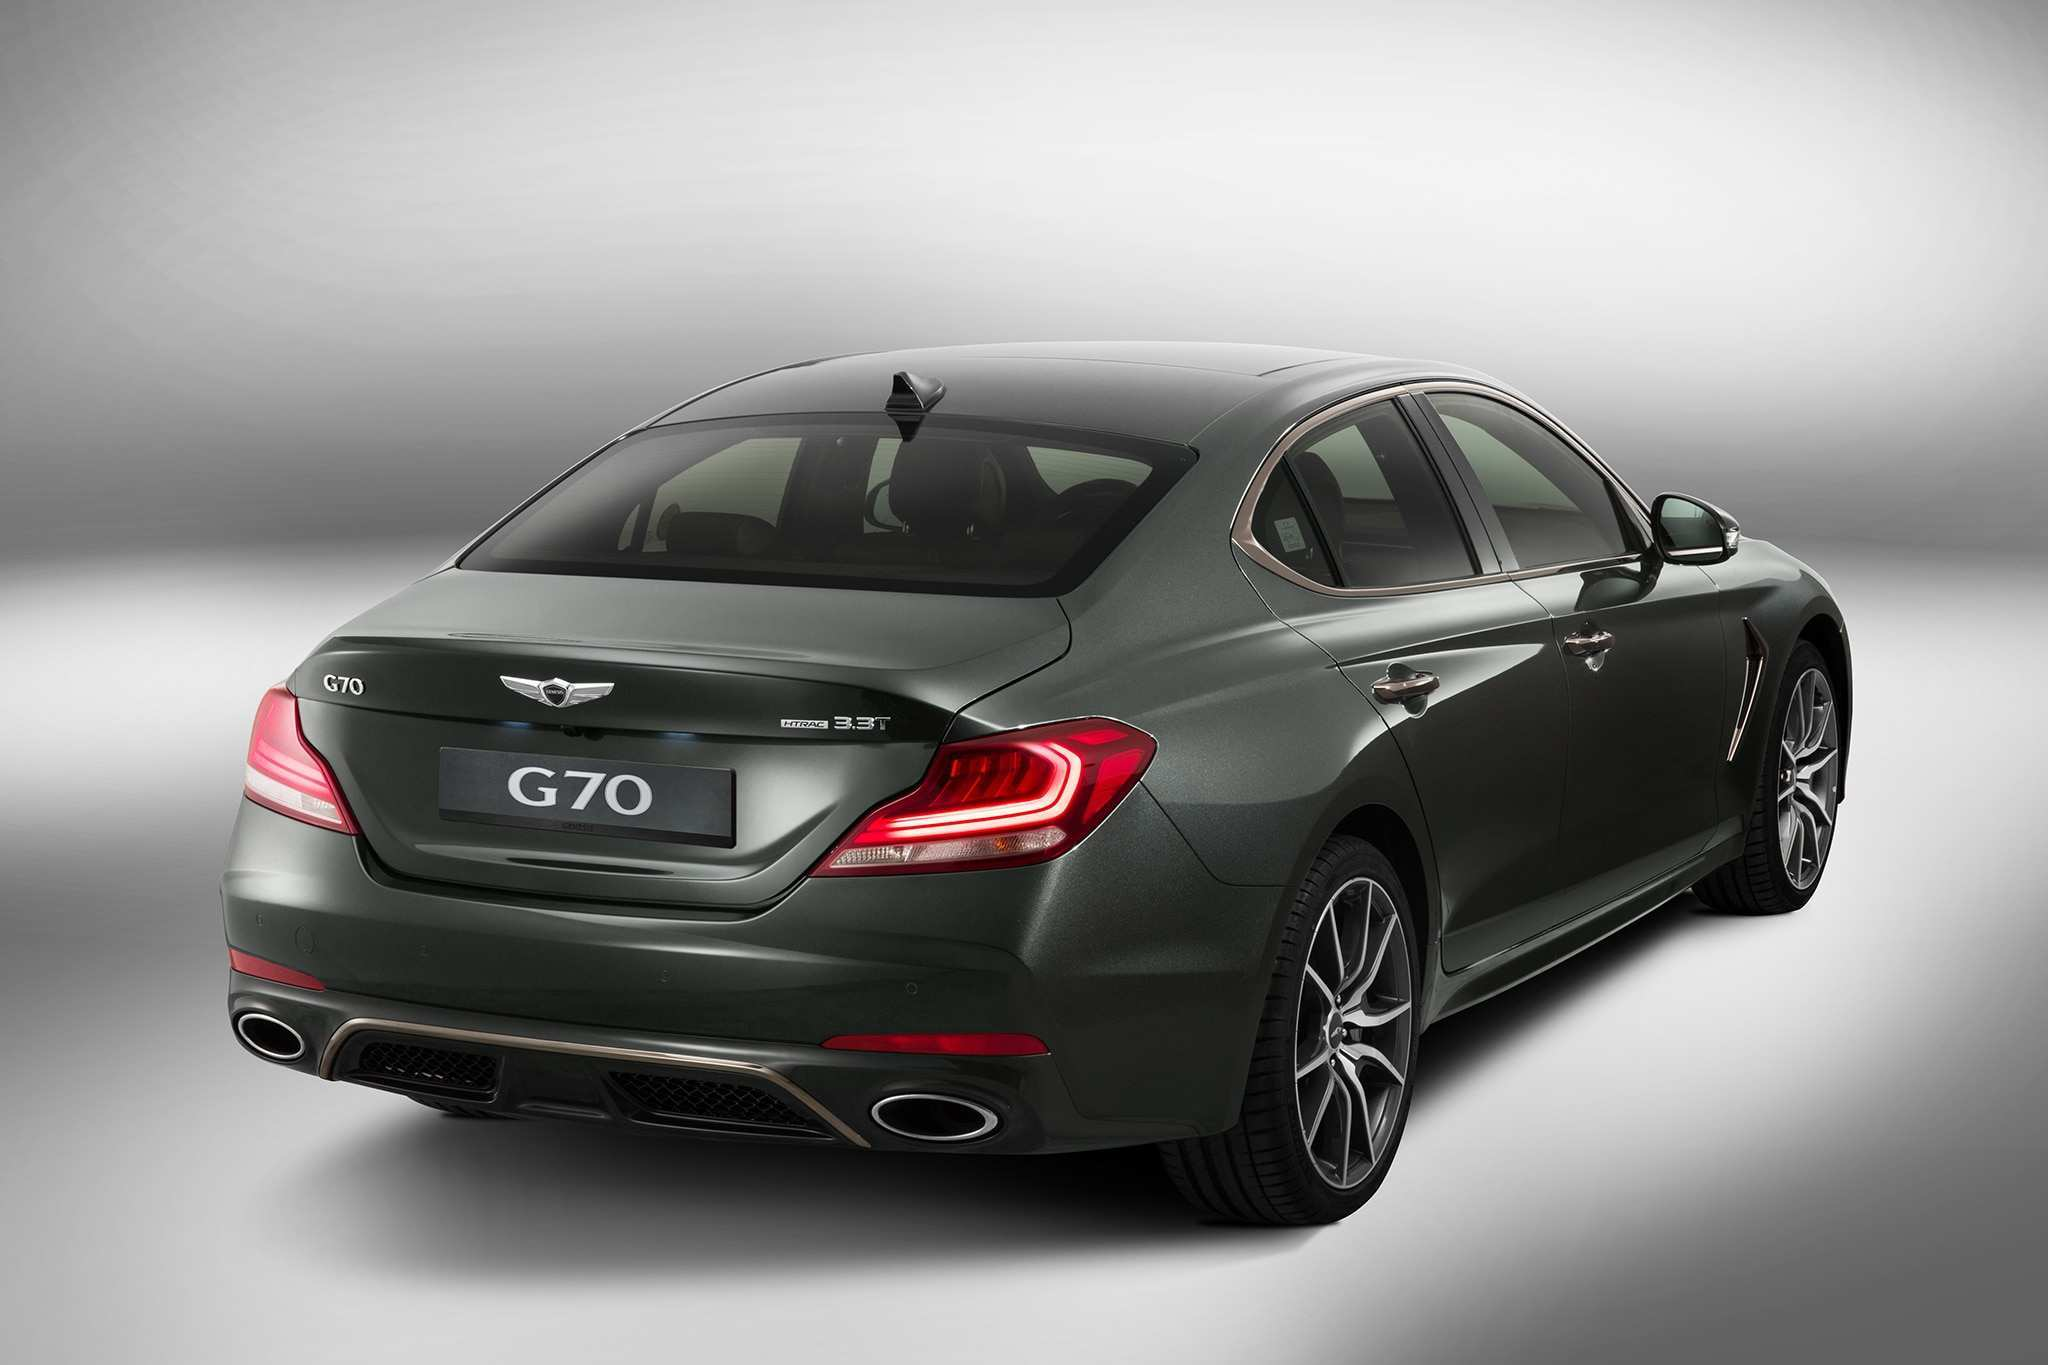 57 Best Review 2019 Genesis G70 Price Prices with 2019 Genesis G70 Price